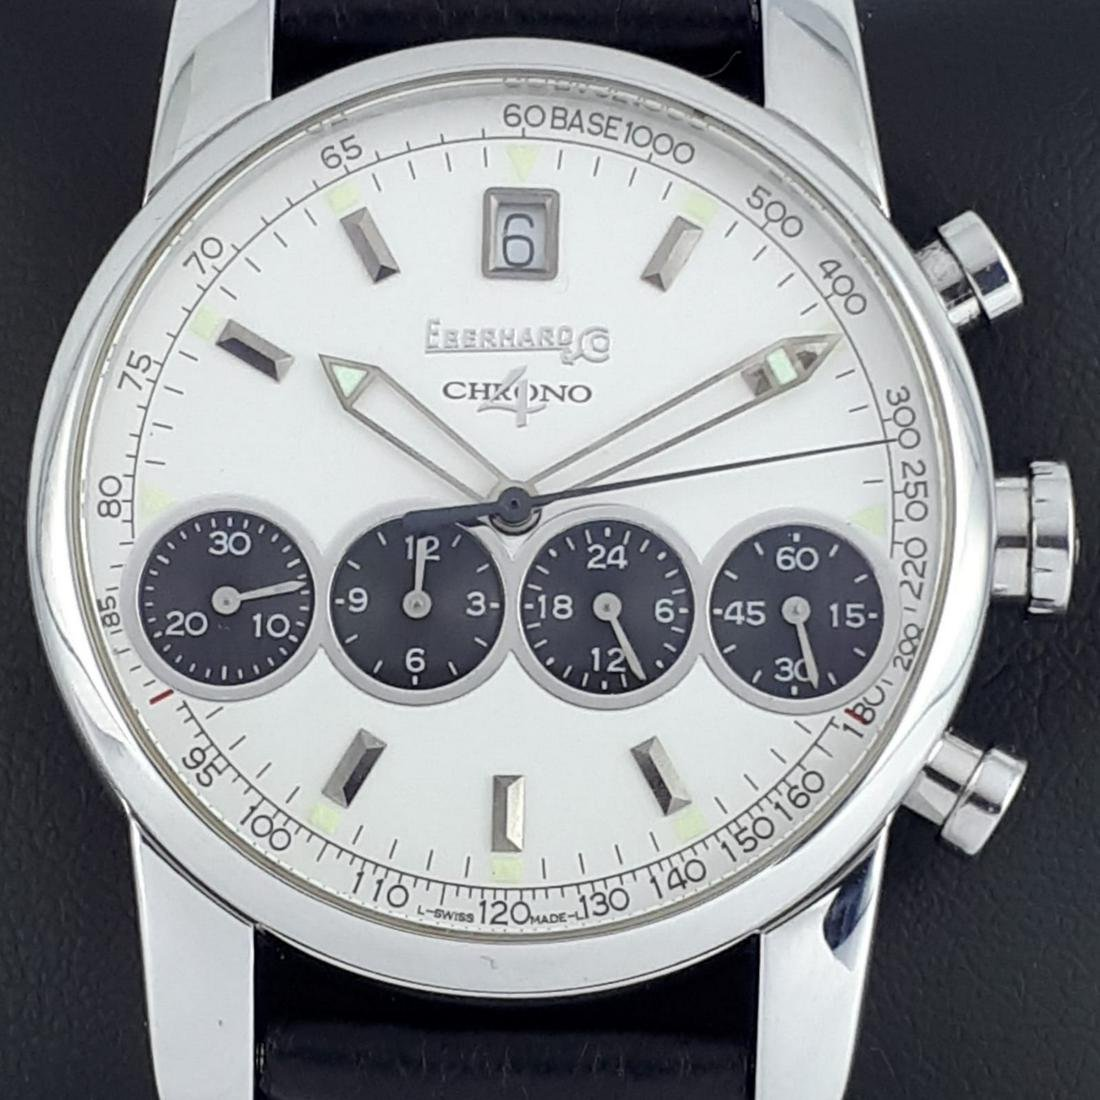 Eberhard & Co. - 4 Chrono, Automatic Chronographe -